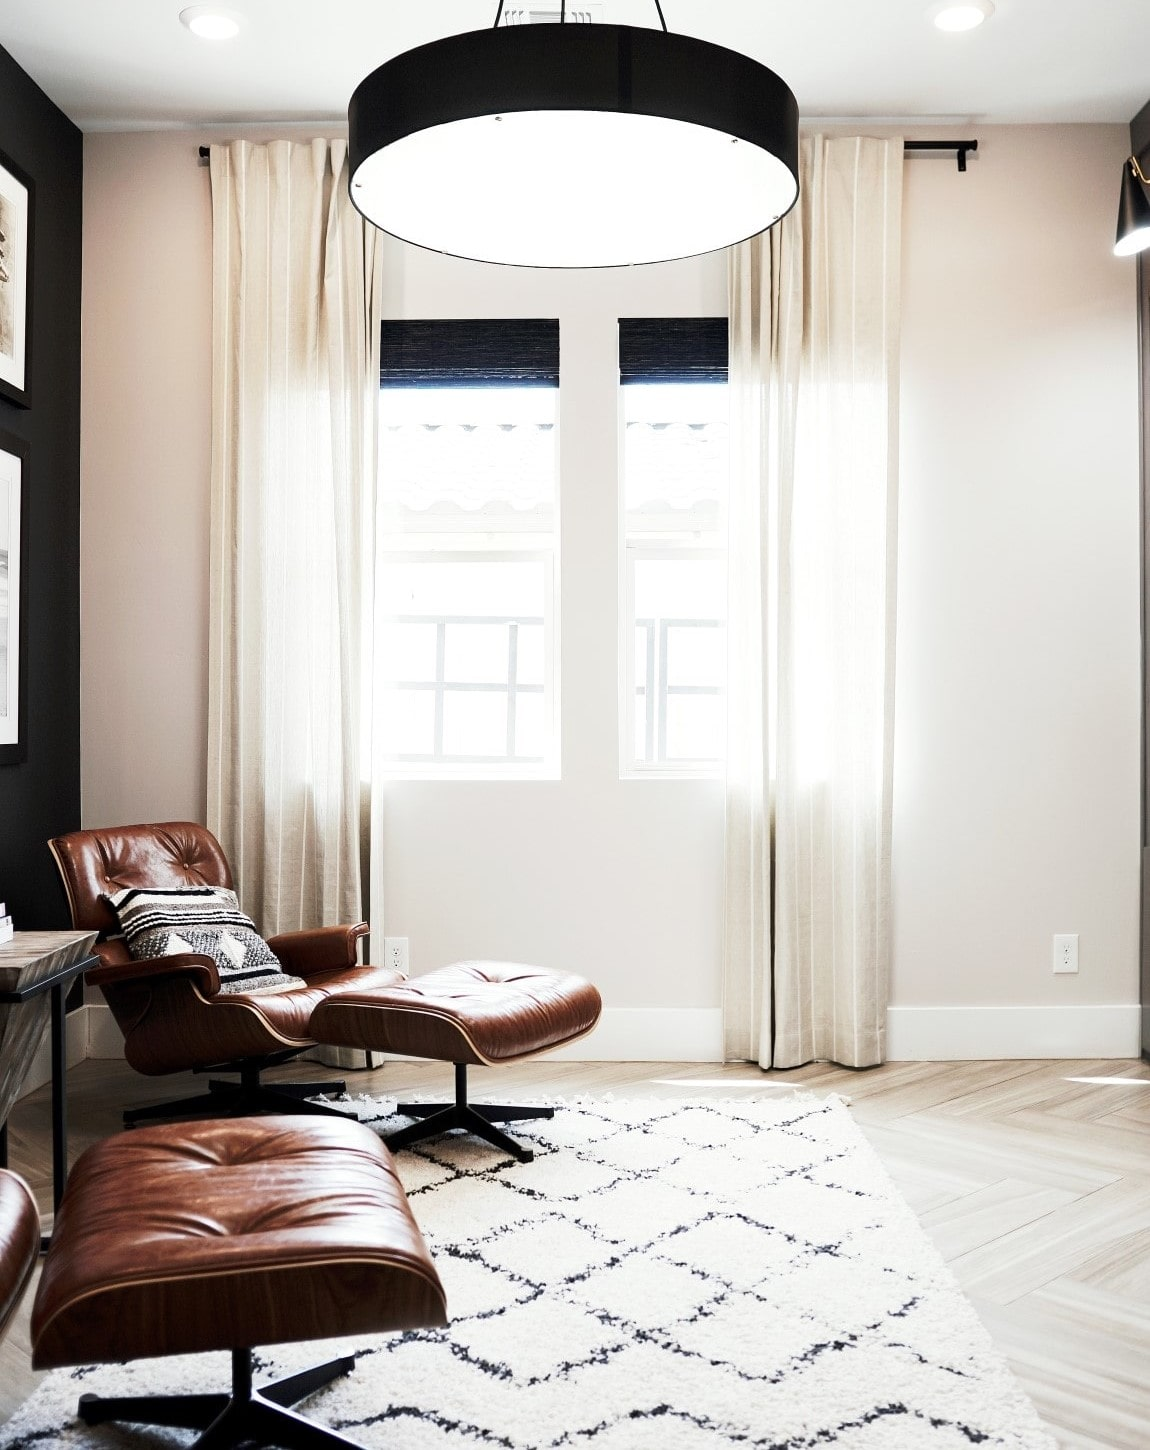 Transitional Design Style vs Traditional Design Style